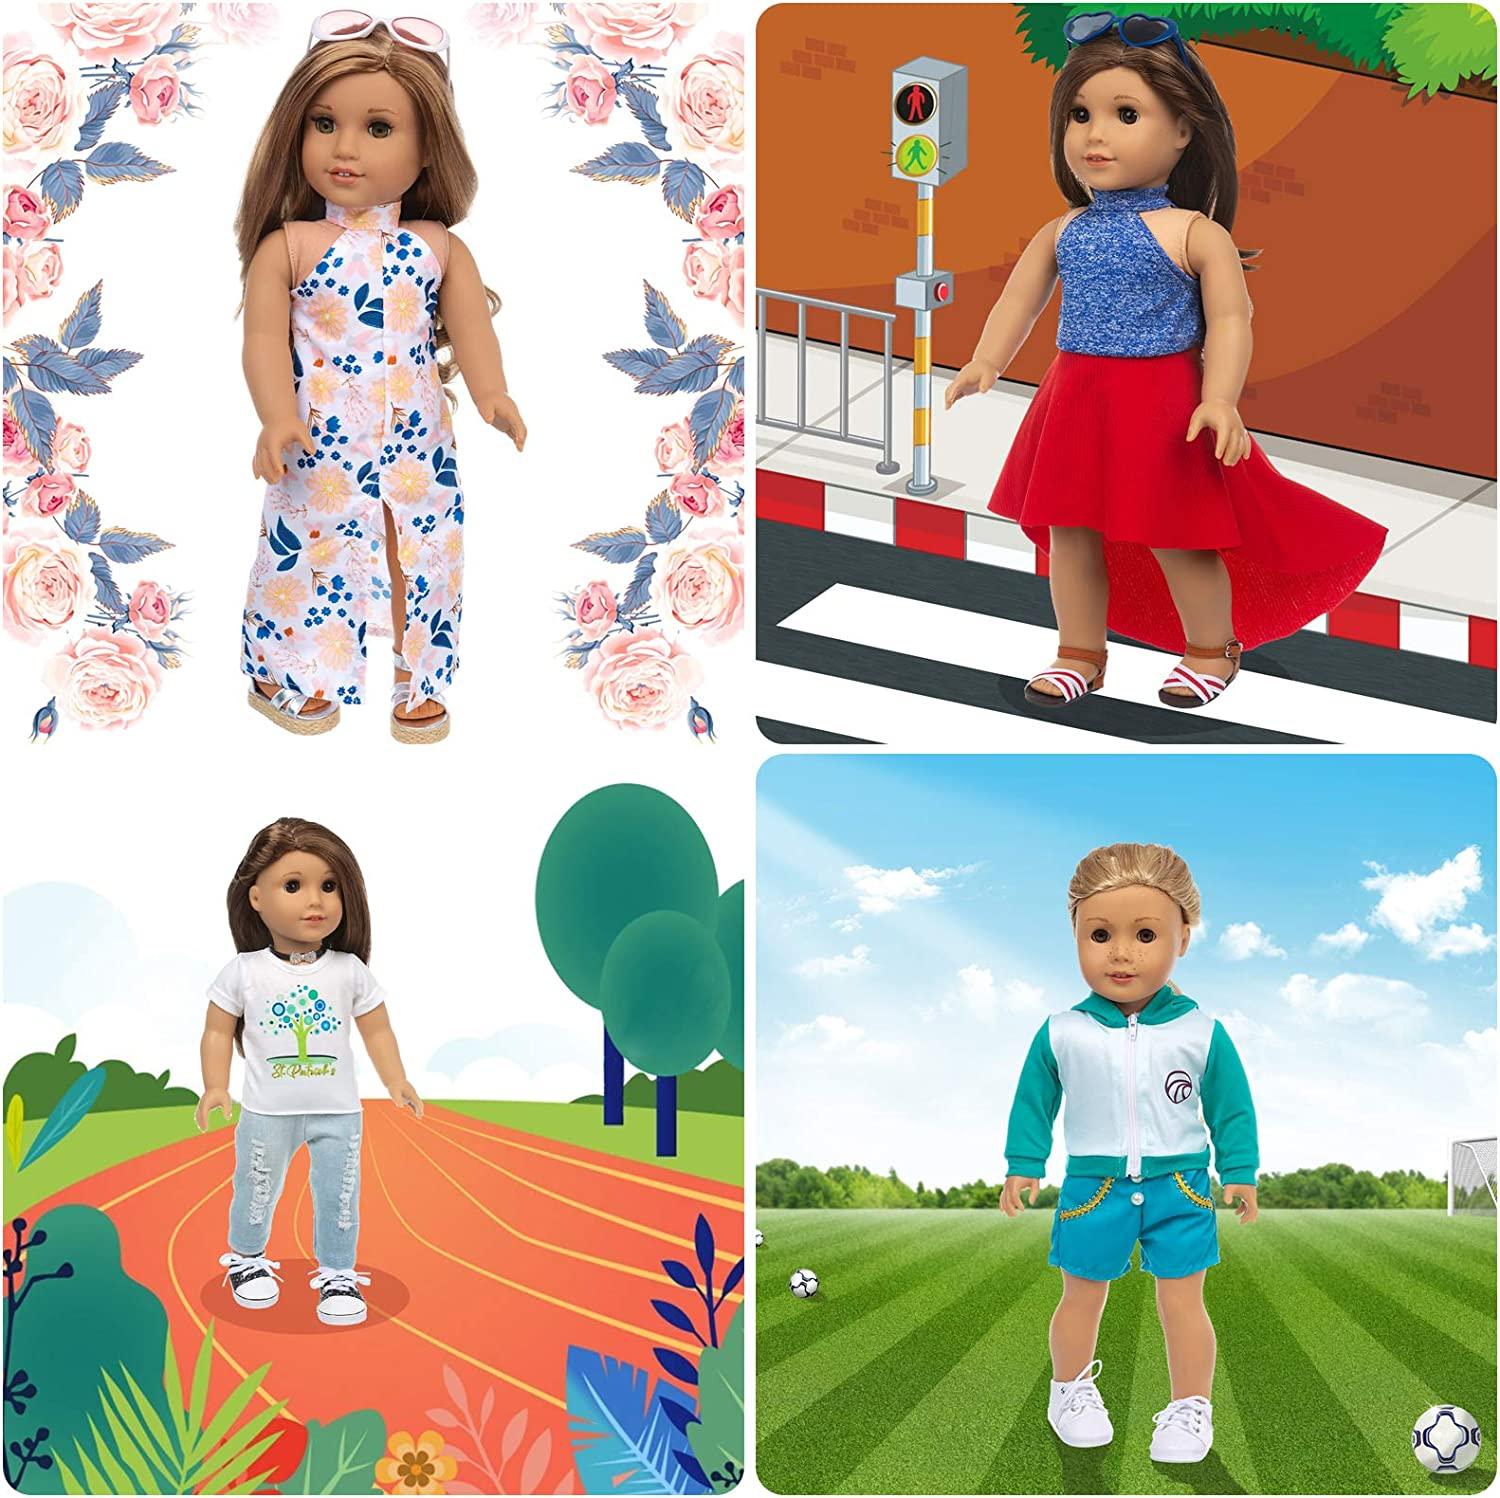 Our Generation Doll My Life Doll Ecore Fun 10 Sets American 18 Inch Doll Clothes and Accessories Doll Outfits Pajamas Dresses Hair Clips and Sunglasses Fit for American Doll